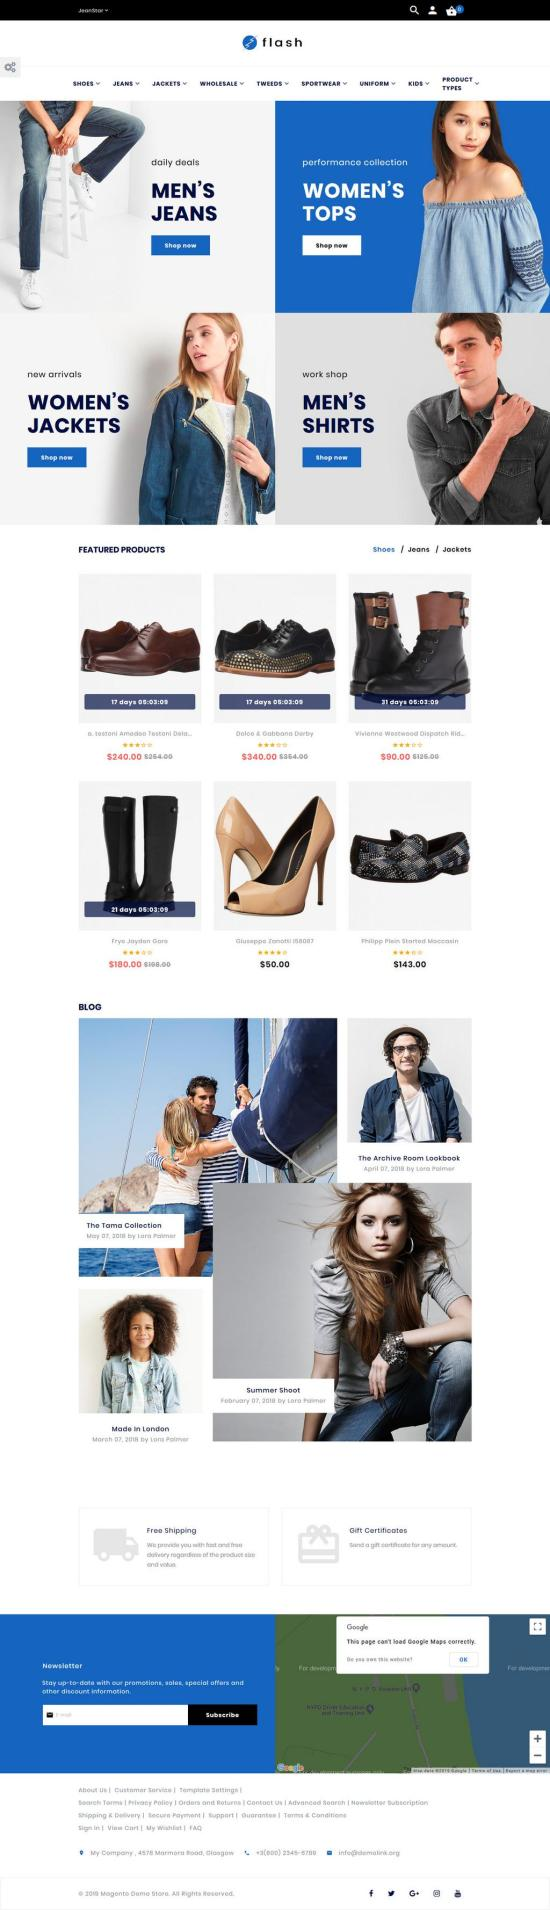 flash magento theme - Flash Magento Theme